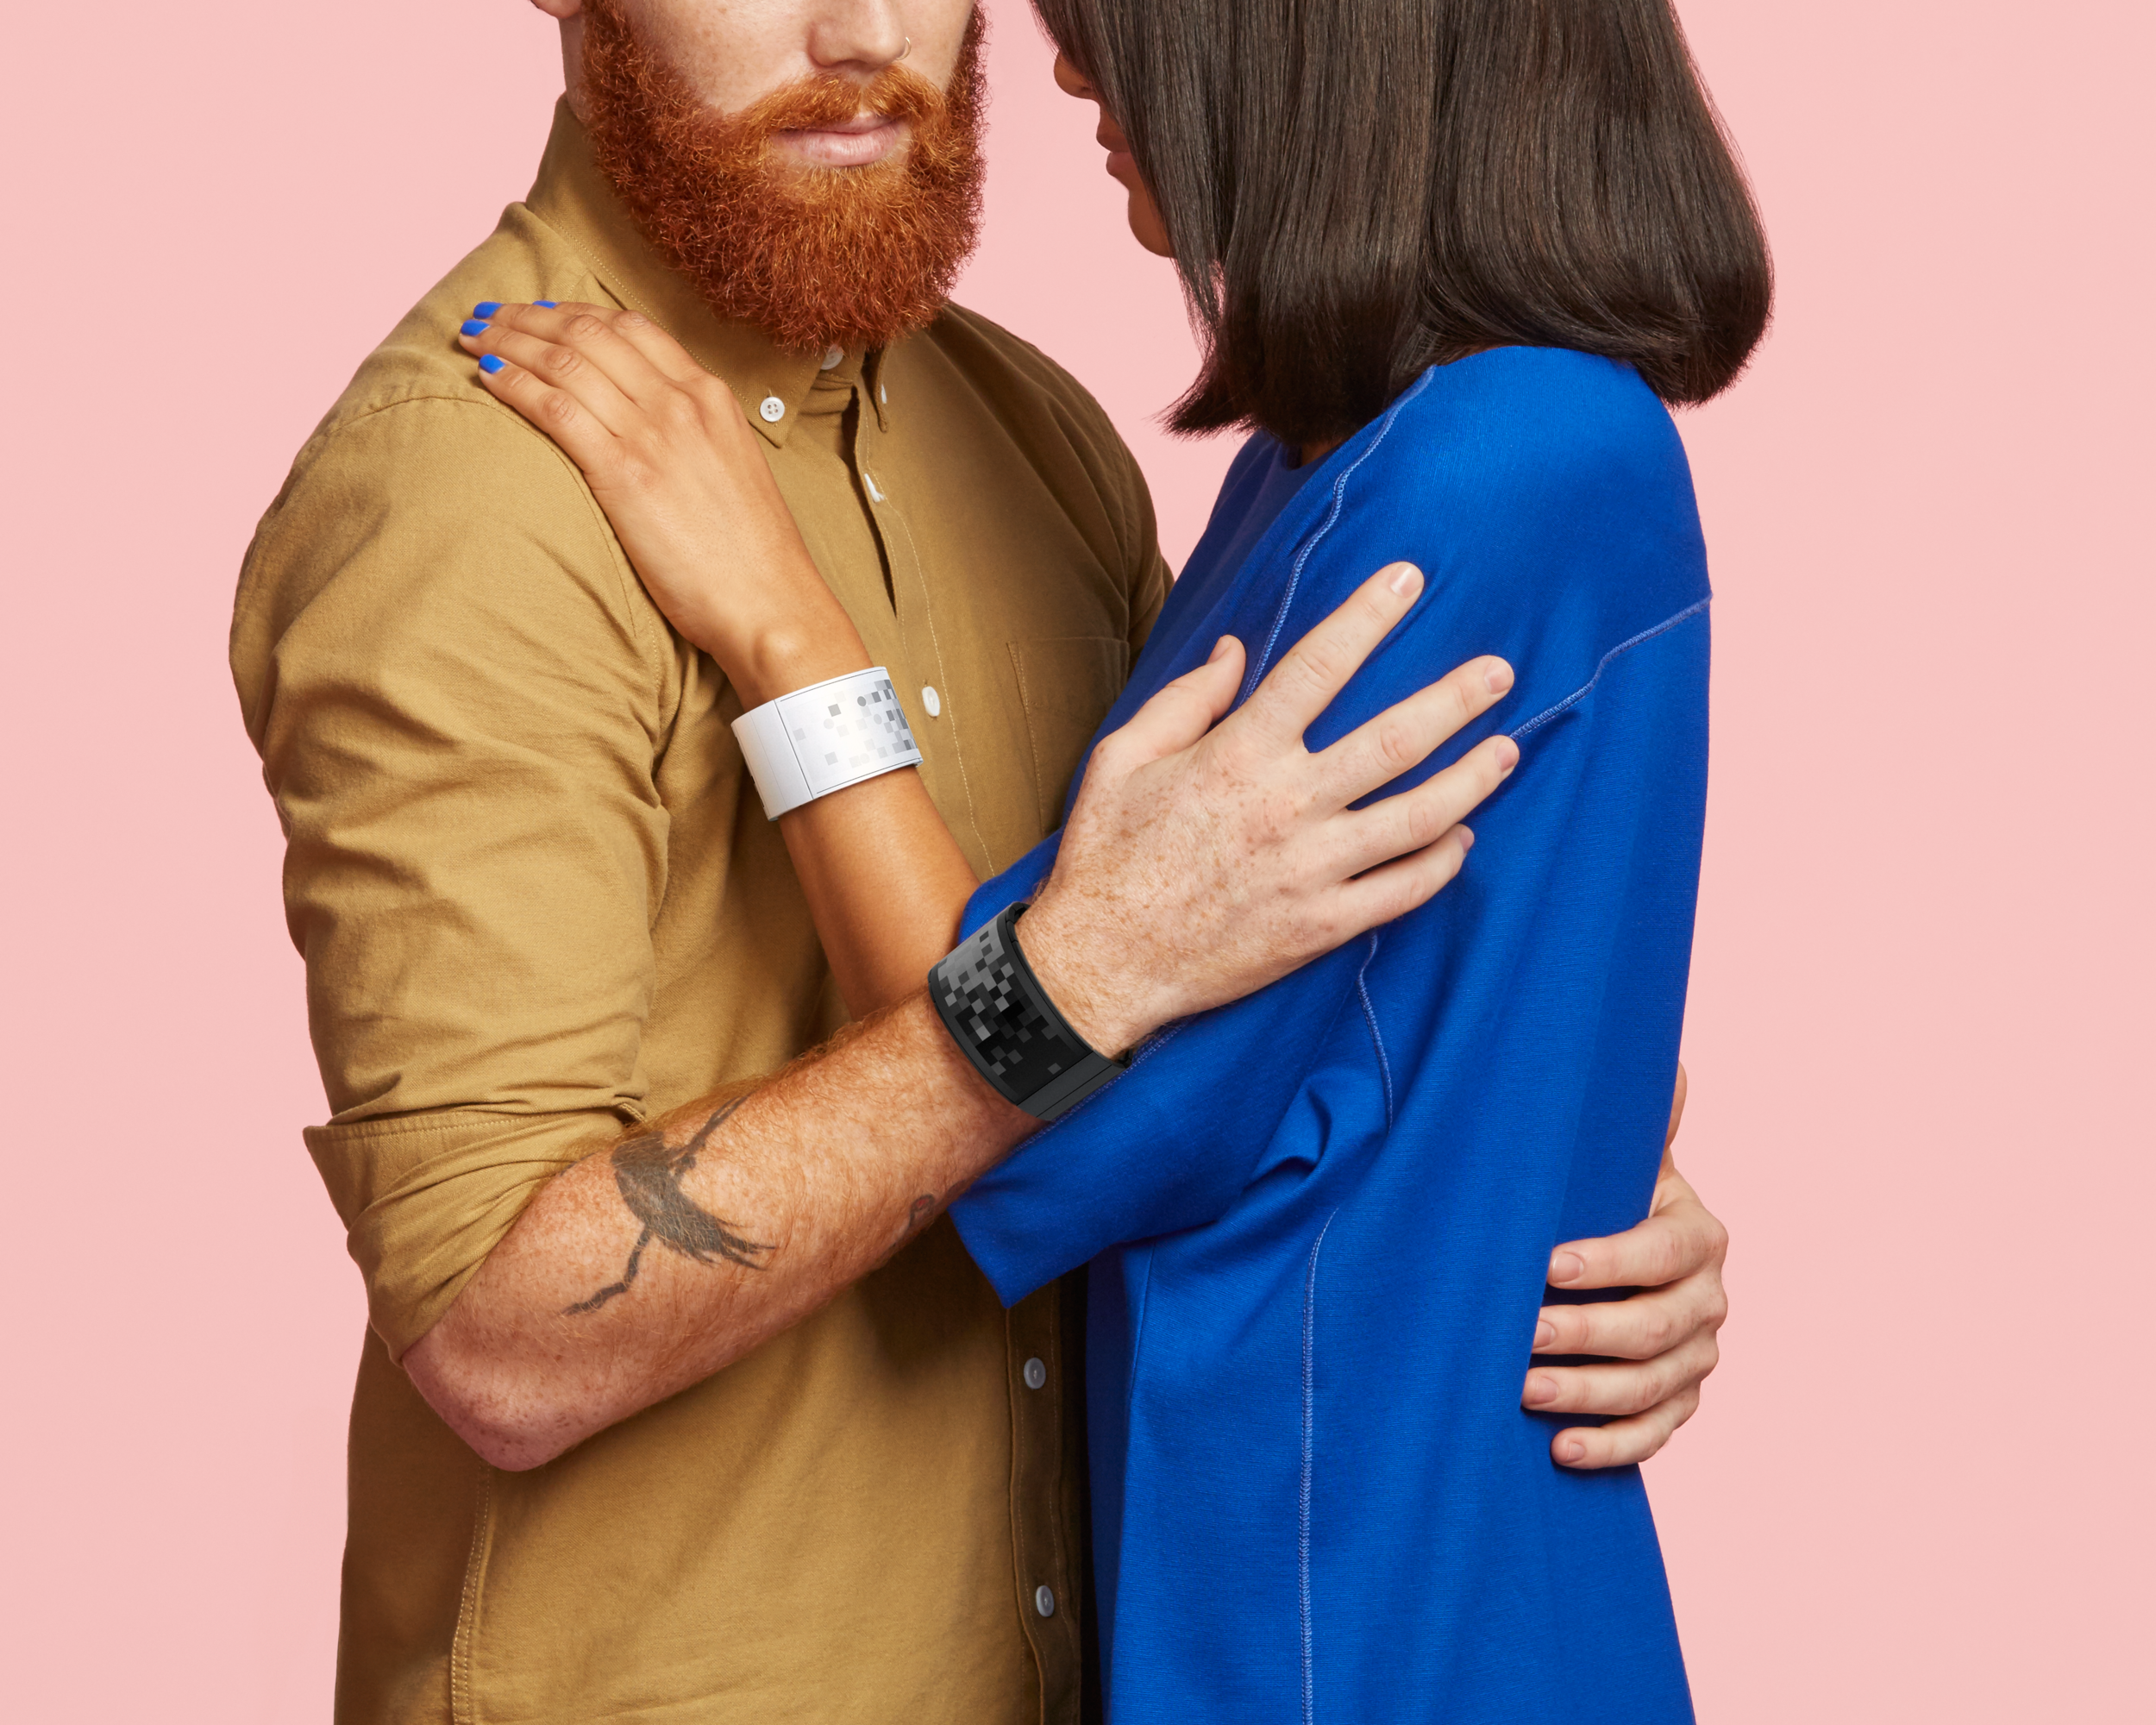 15-0201-COUPLE_1332-V07.png